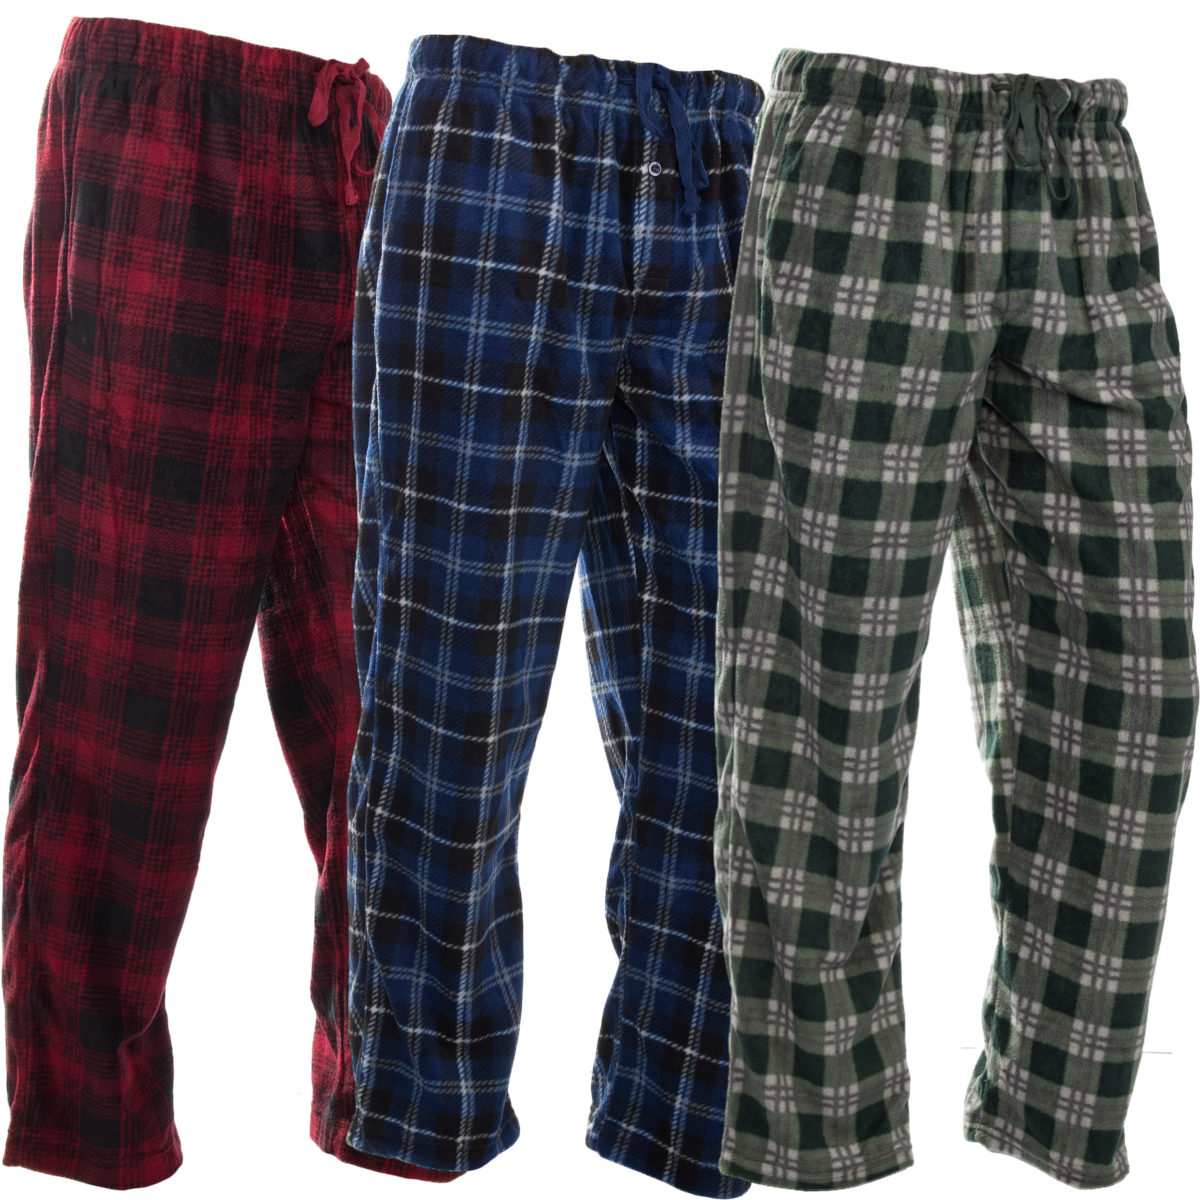 DG Hill (3 Pairs) Mens PJ Pajama Pants Bottoms Fleece Lounge Sleepwear Plaid PJs with Pockets Pants (Red, Blue & Green)